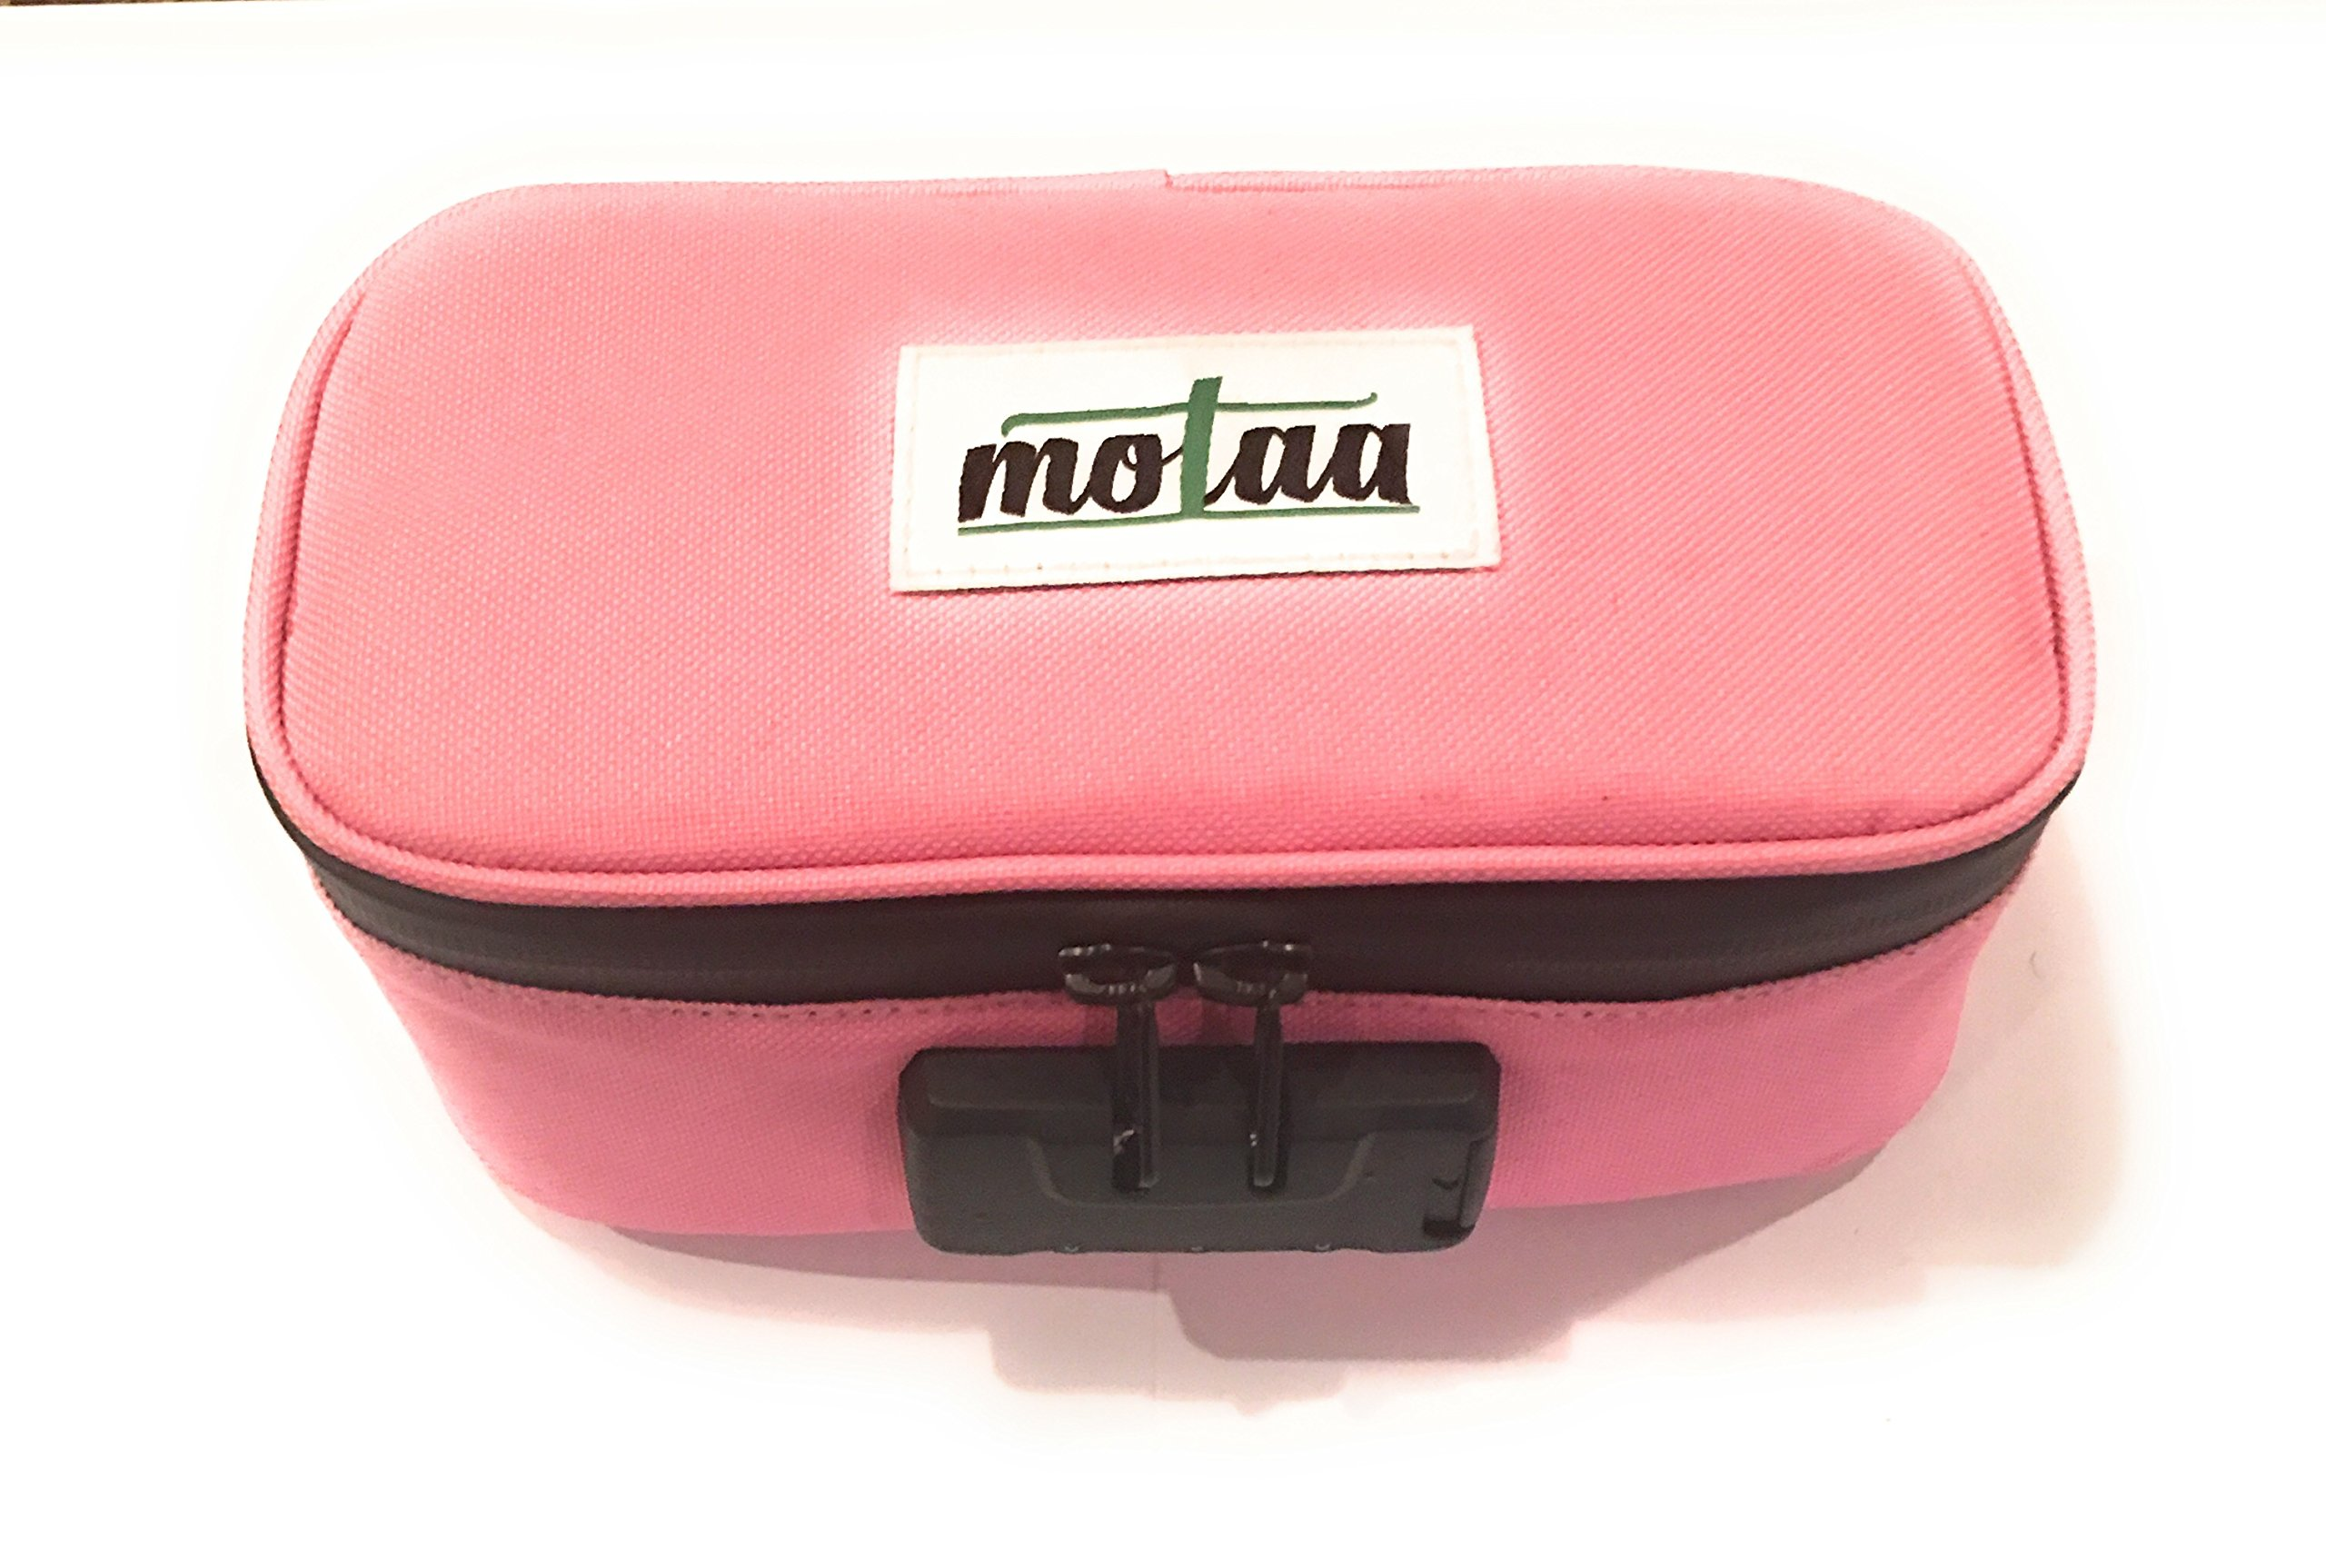 MOTAA Smell Proof case w/Combo Lock with Activated Carbon mesh Material, Includes a Bonus Incense Spoon (Pink)